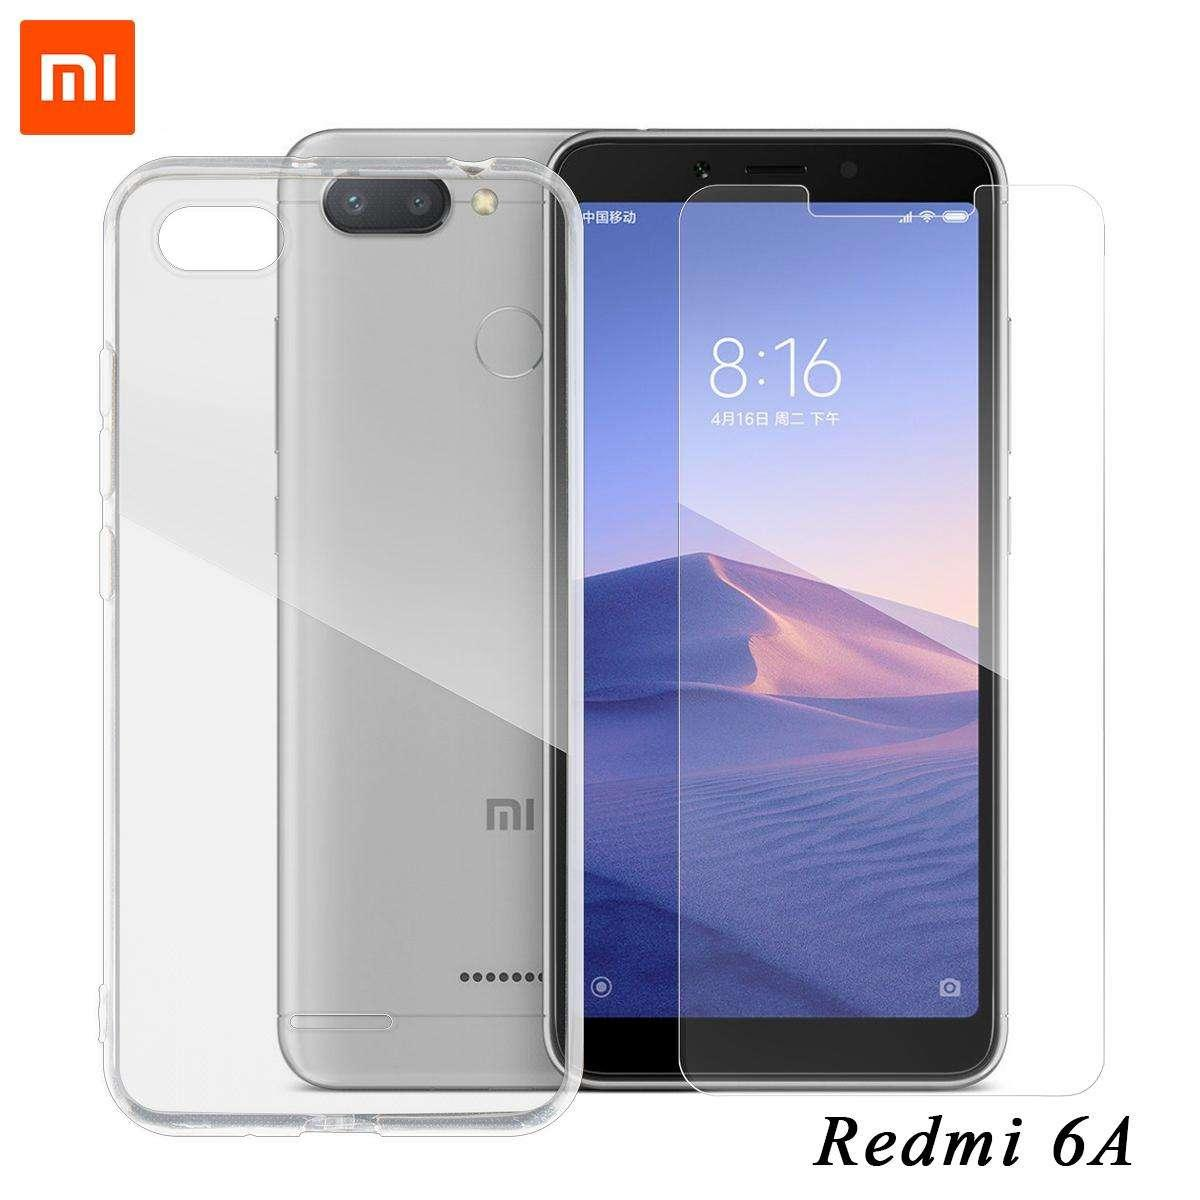 Tylex Tempered Glass 2 Pcs For Xiaomi Redmi 6A with FREE Tylex Jelly Case For Xiaomi